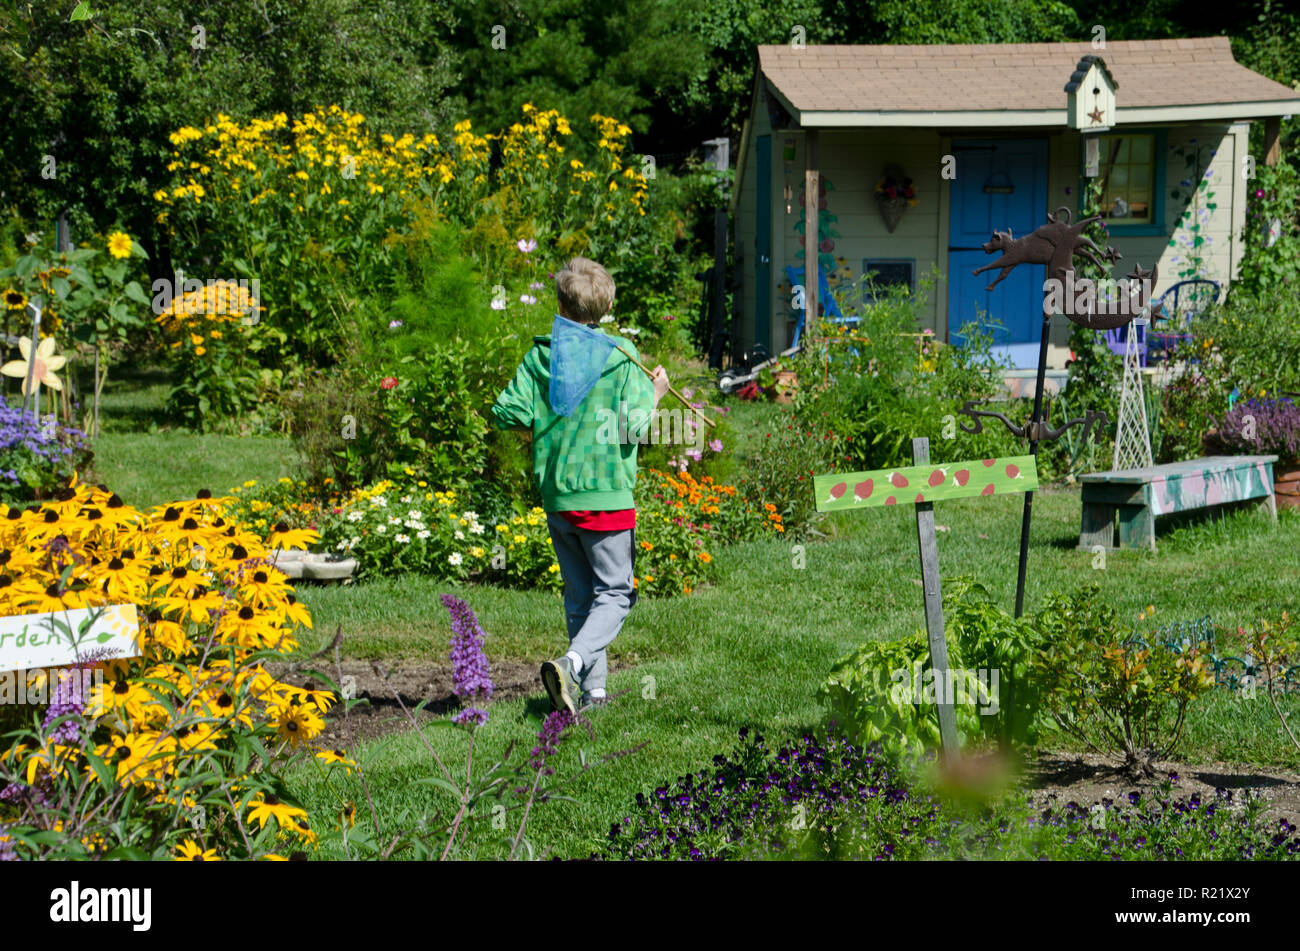 Young boy in colorful community garden with buttefly net on the hunt